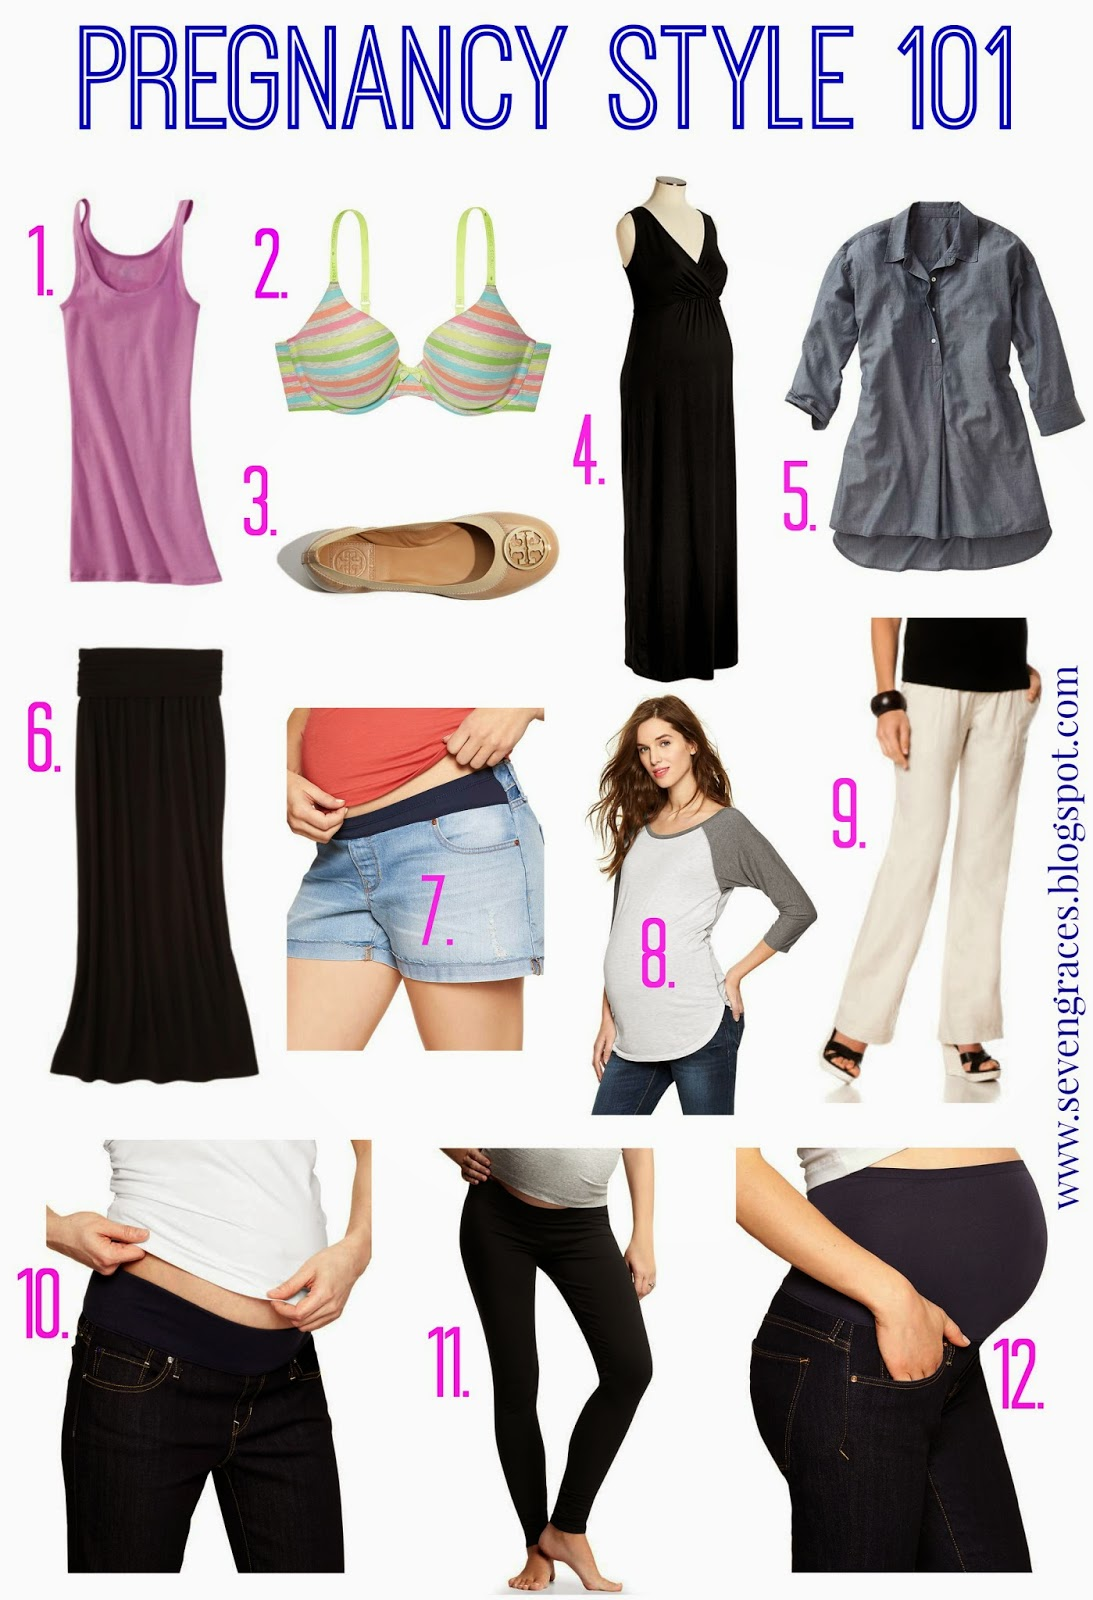 7df2b9aac7 Here are my top picks and must-haves to get you through your pregnancy  looking classy and fabulous.